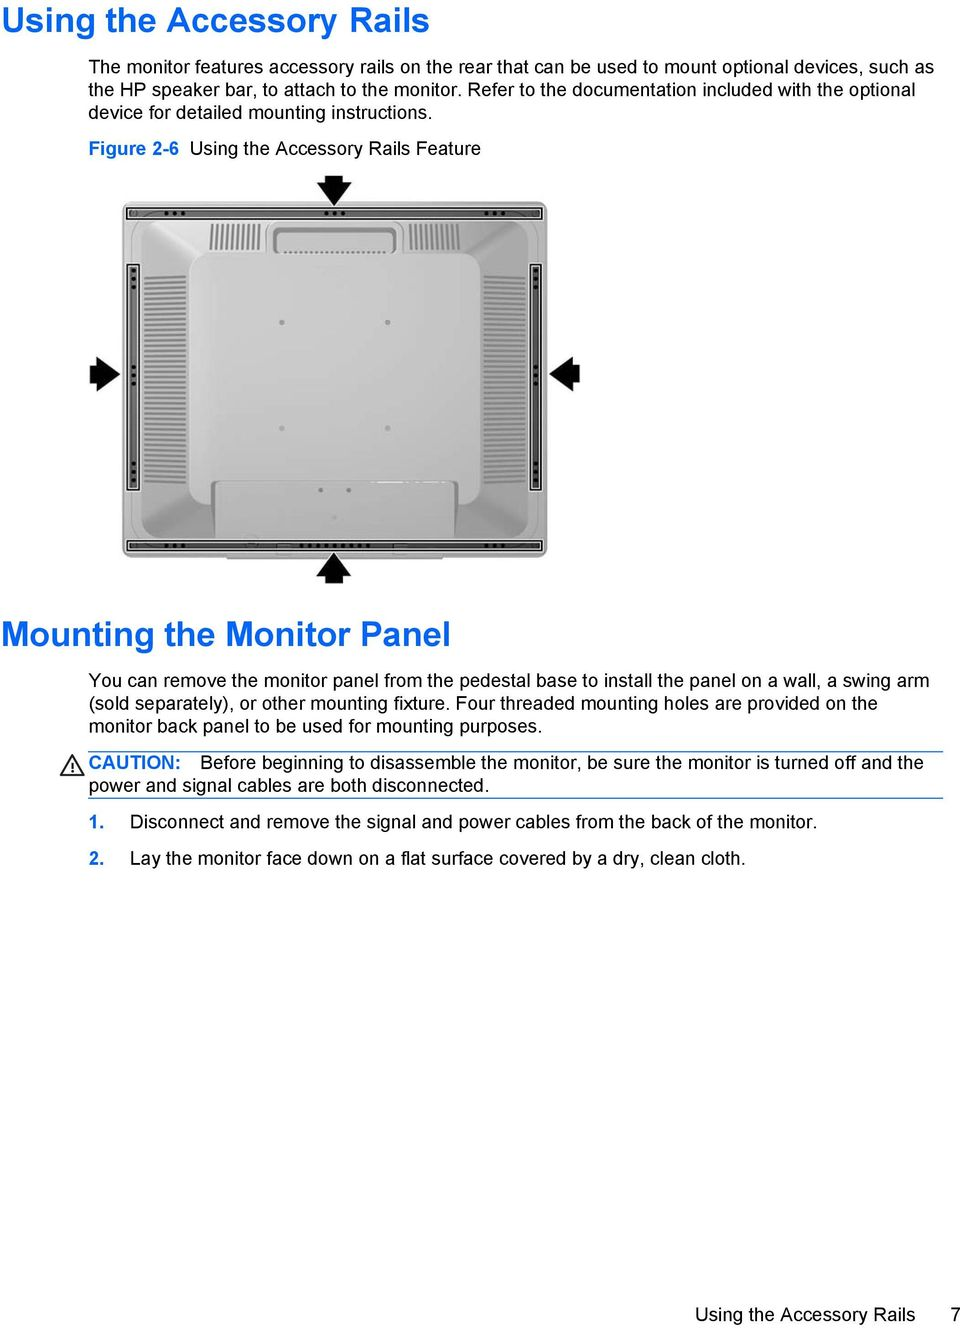 Figure 2-6 Using the Accessory Rails Feature Mounting the Monitor Panel You can remove the monitor panel from the pedestal base to install the panel on a wall, a swing arm (sold separately), or other